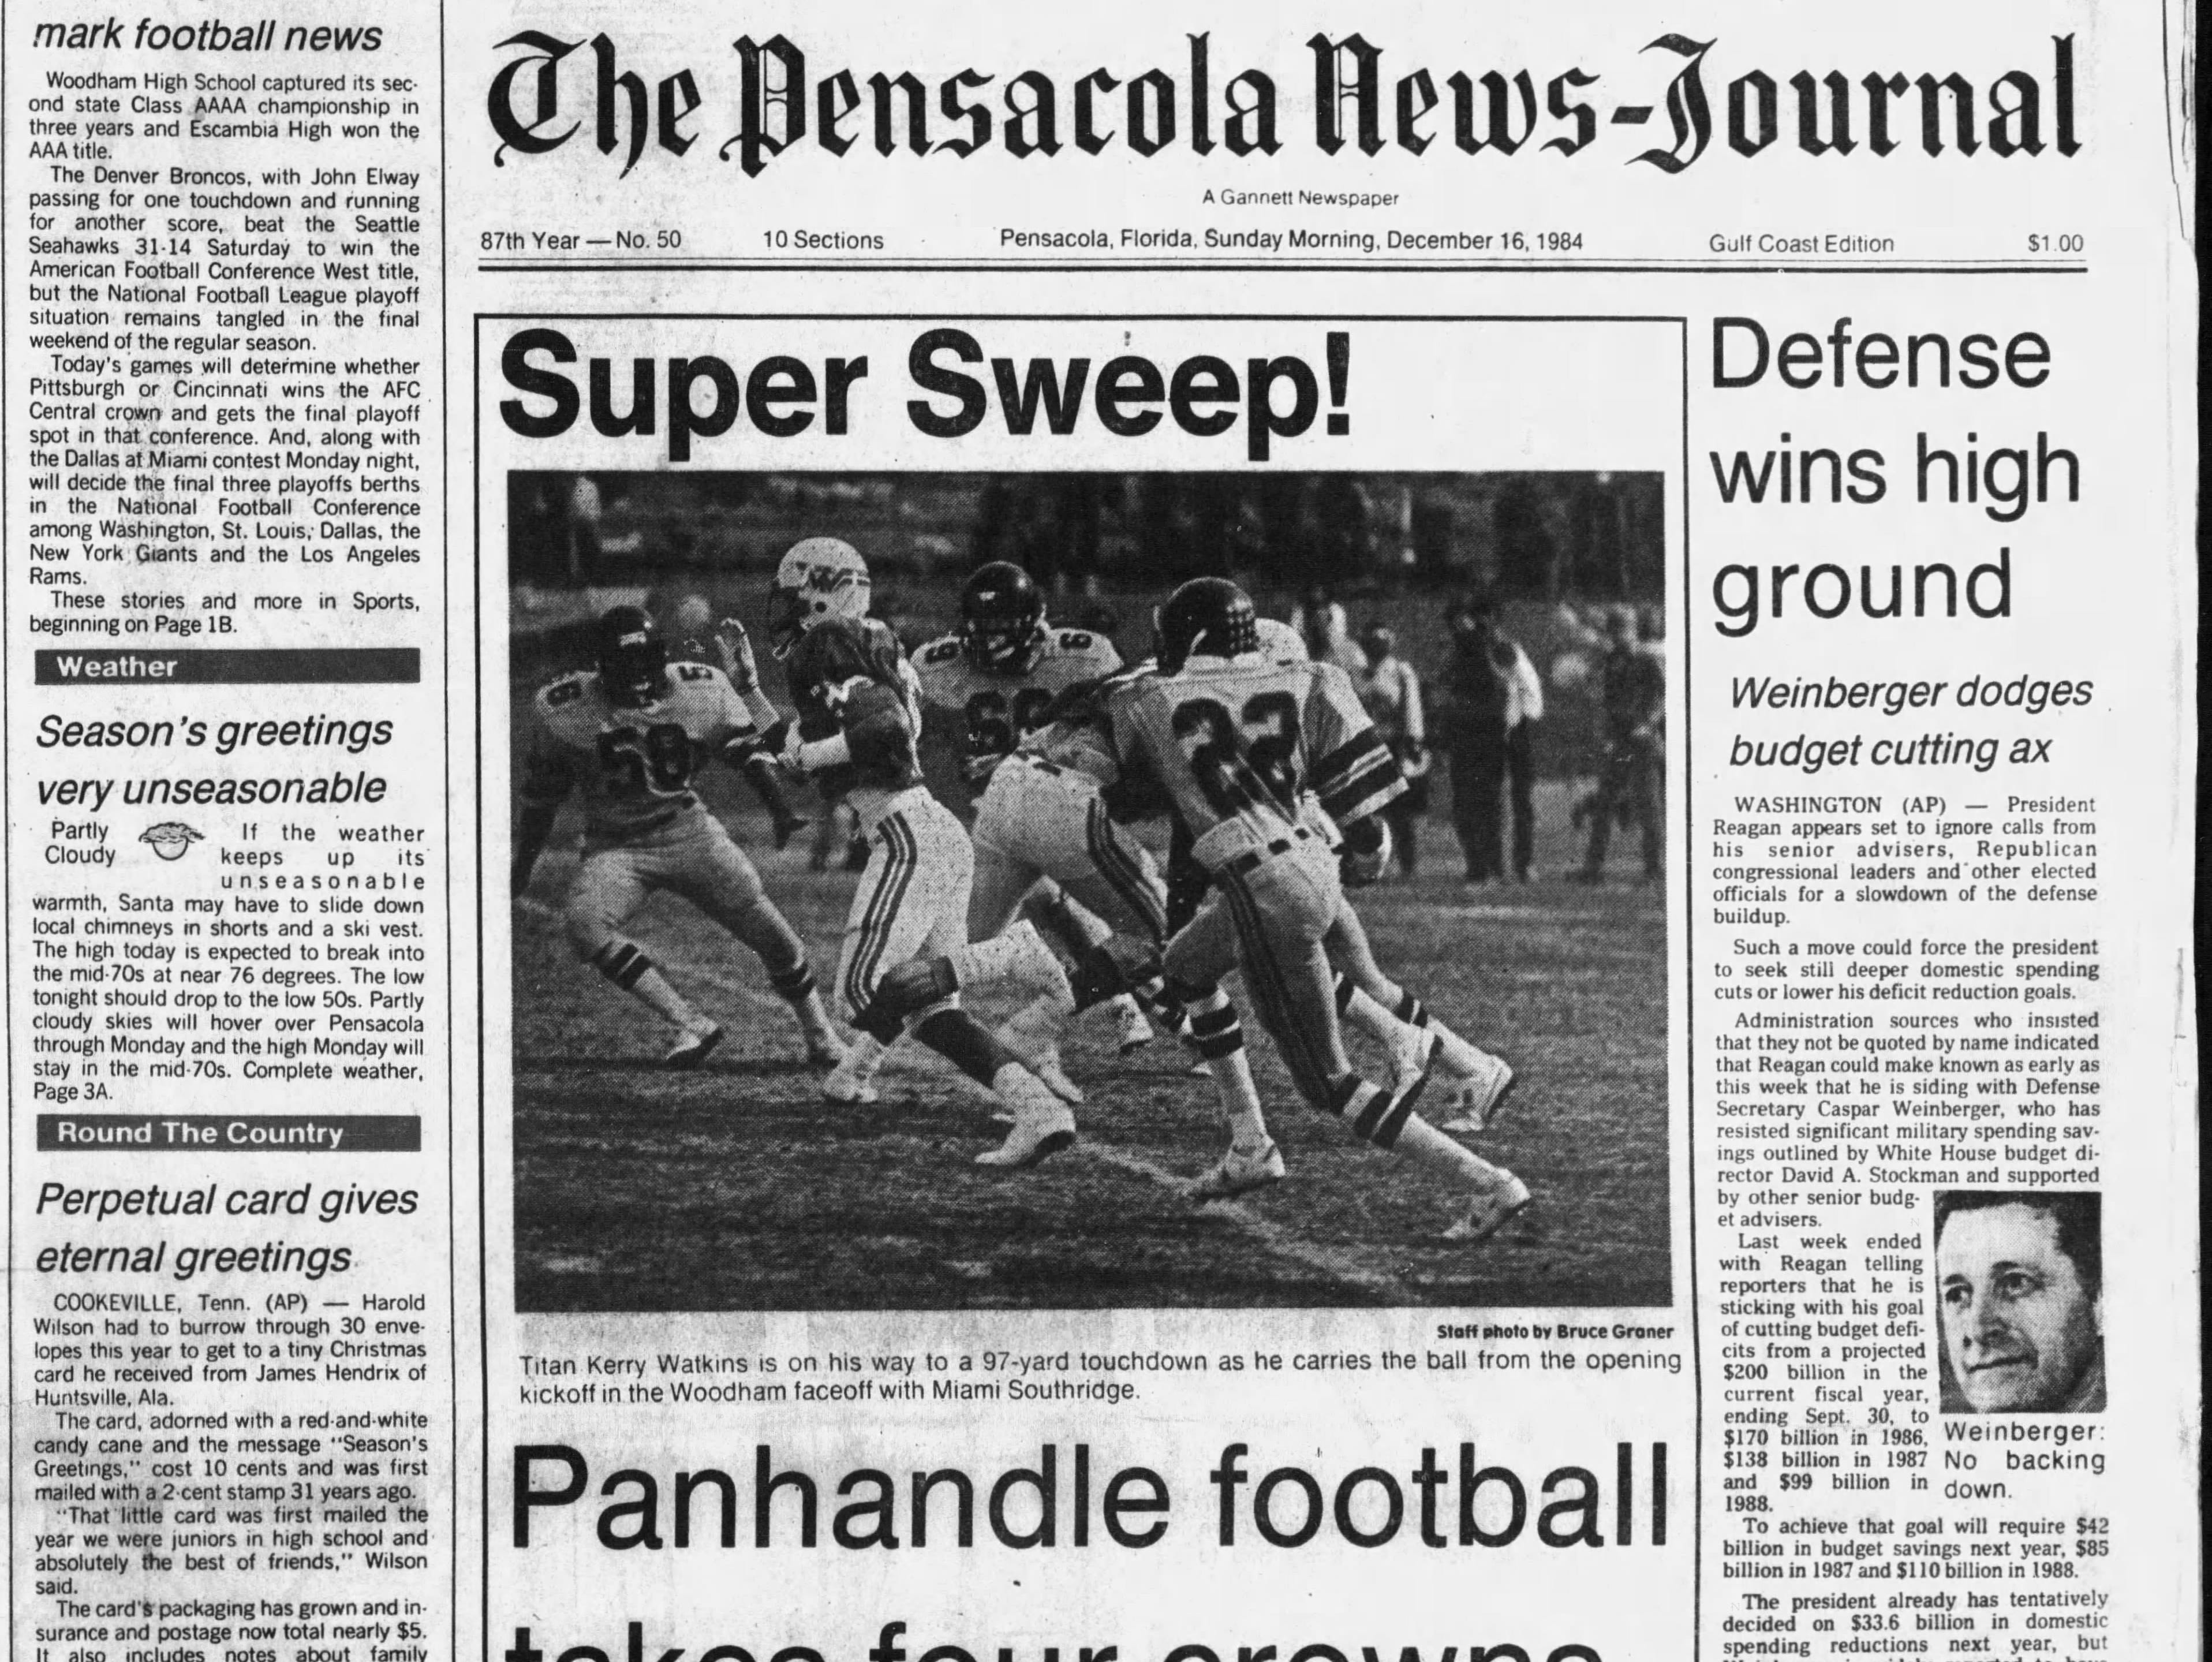 1984: Woodham defeats Miami Southridge, 20-7, for Class 4A title and Escambia defeats St. Petersburg, 47-14 for Class 3A title.